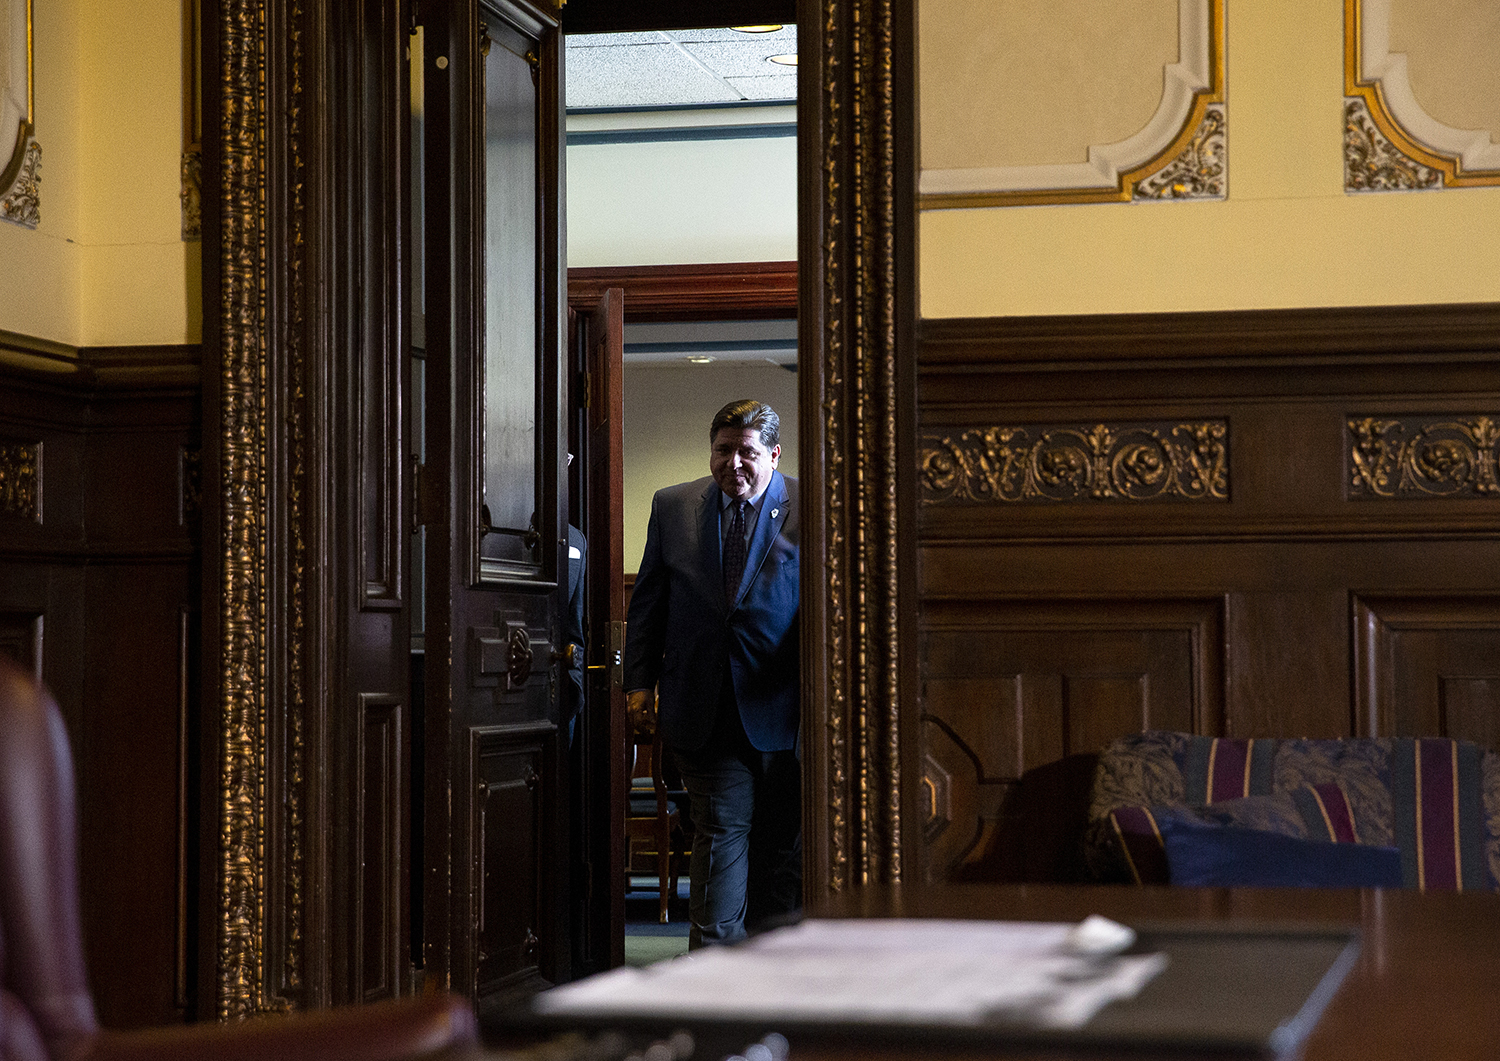 Gov. J.B. Pritzker enters his office on his first full day in office to sign a package of legislation and executive orders designed to raise wages Tuesday, Jan. 15, 2019 at the Capitol in Springfield, Ill. [Rich Saal/The State Journal-Register]